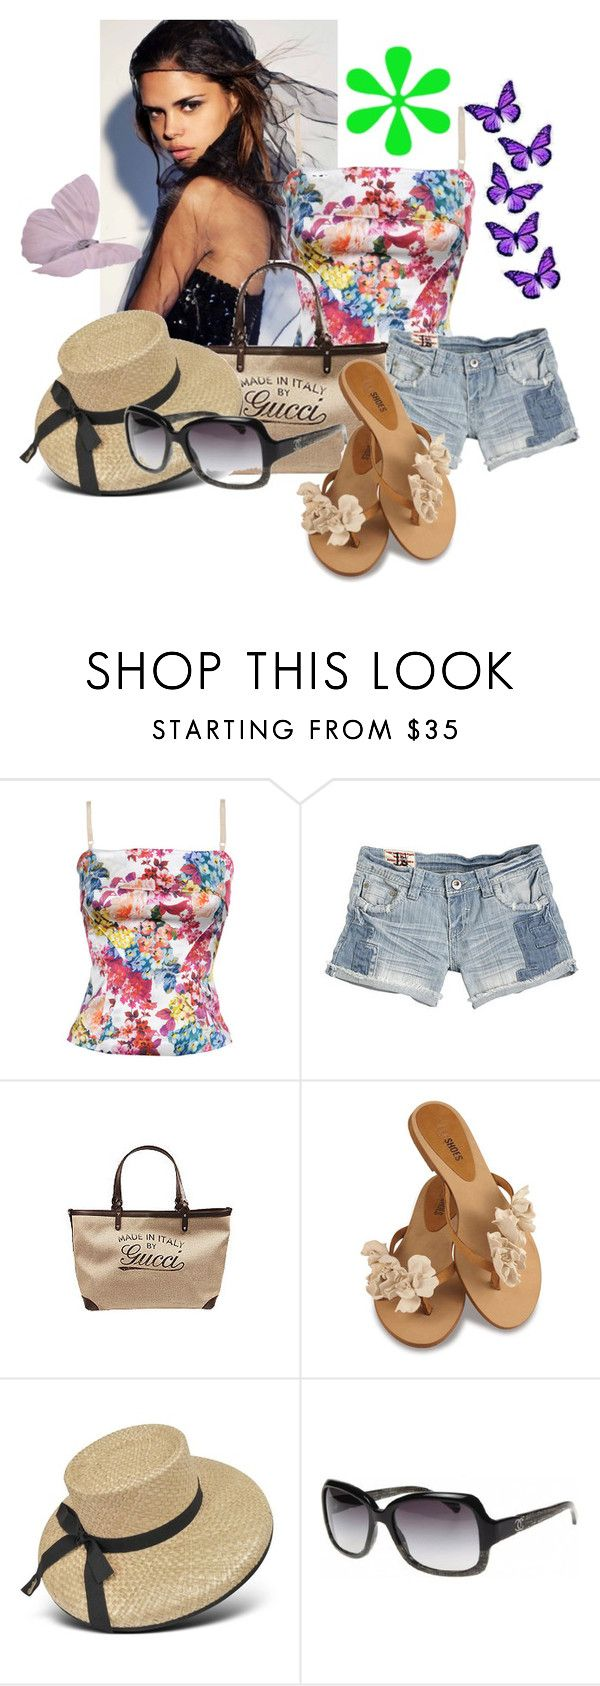 """Beach time"" by markygirl ❤ liked on Polyvore featuring D&G, Gucci, Borsalino and Chanel"